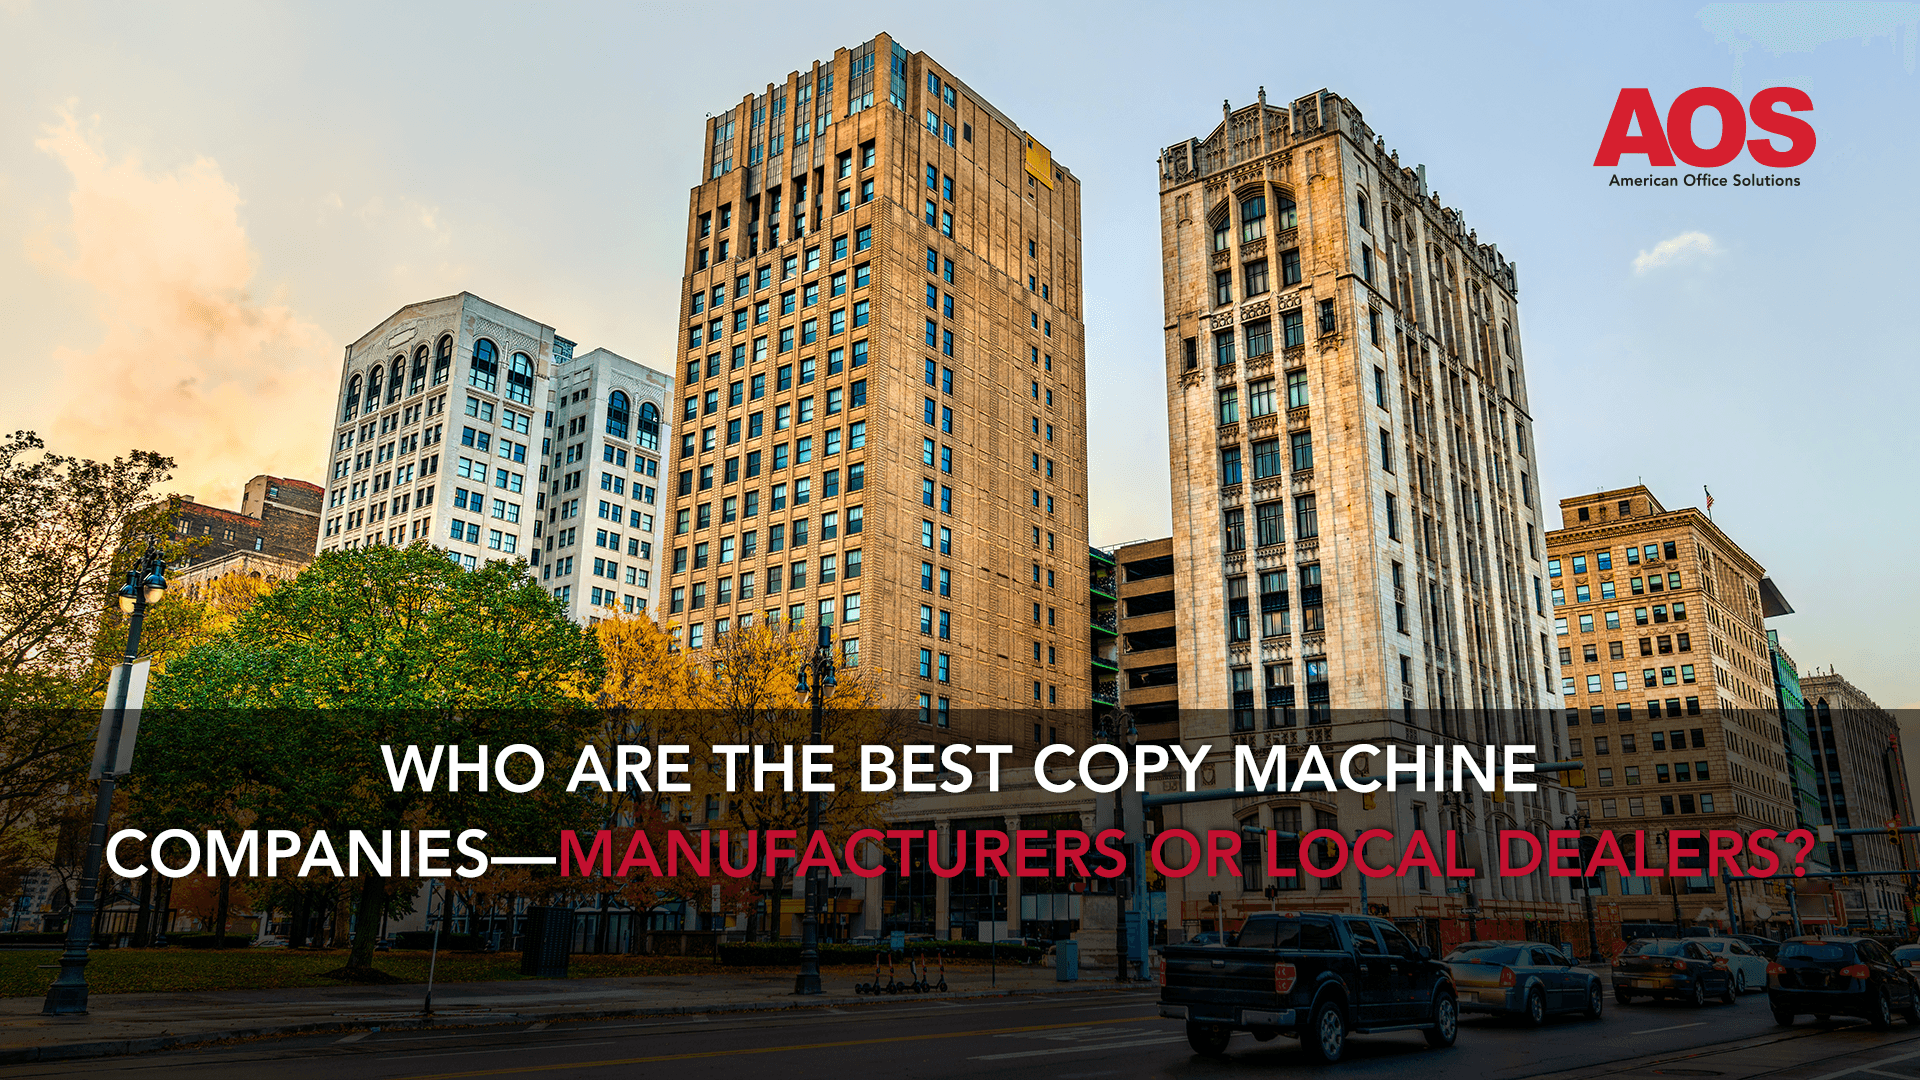 Who are the Best Copy Machine Companies—Manufacturers or Local Dealers?